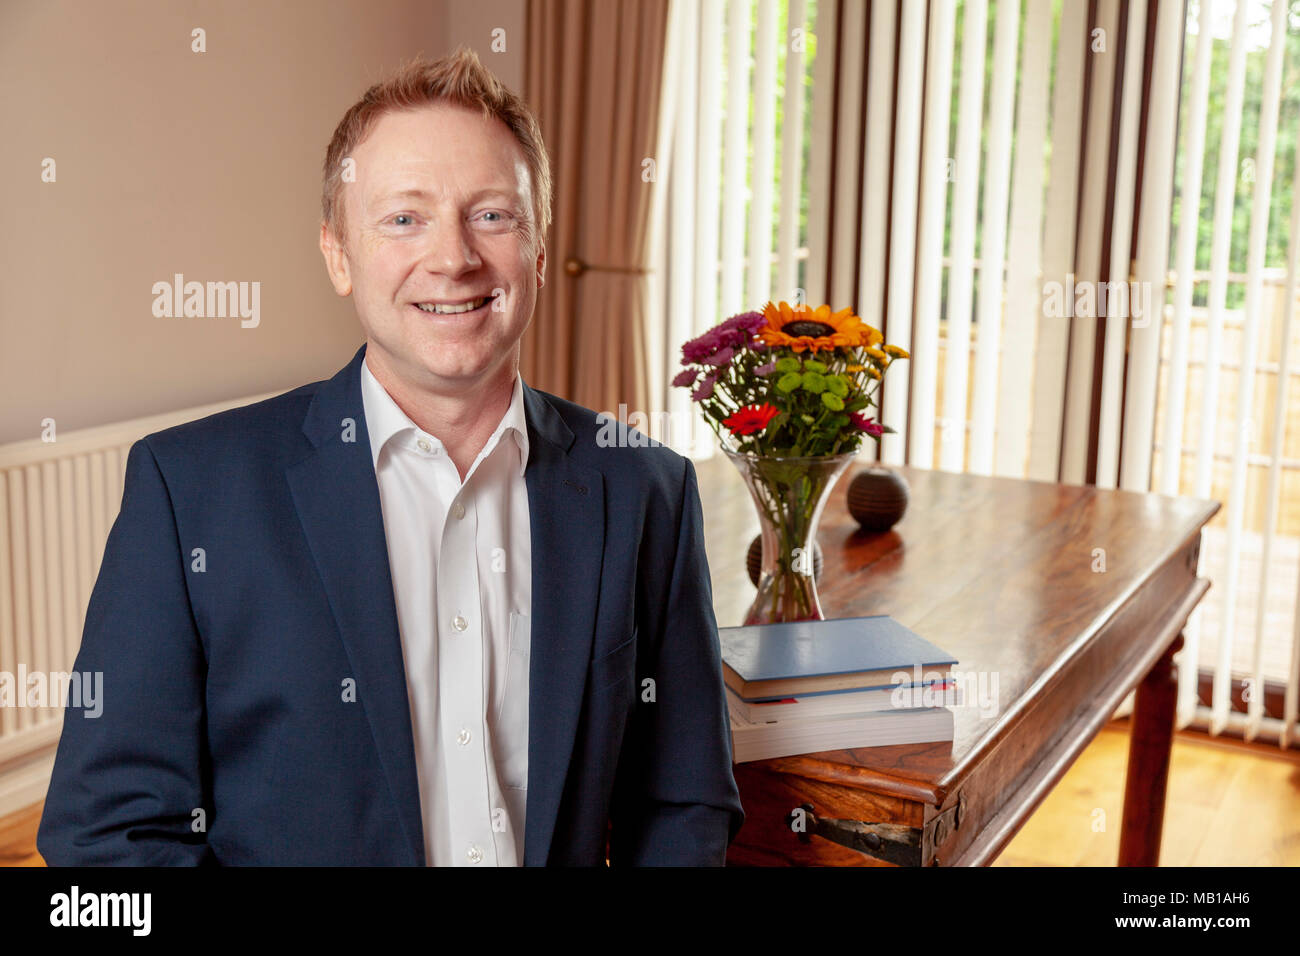 A man in business dress sitting by a table - Stock Image